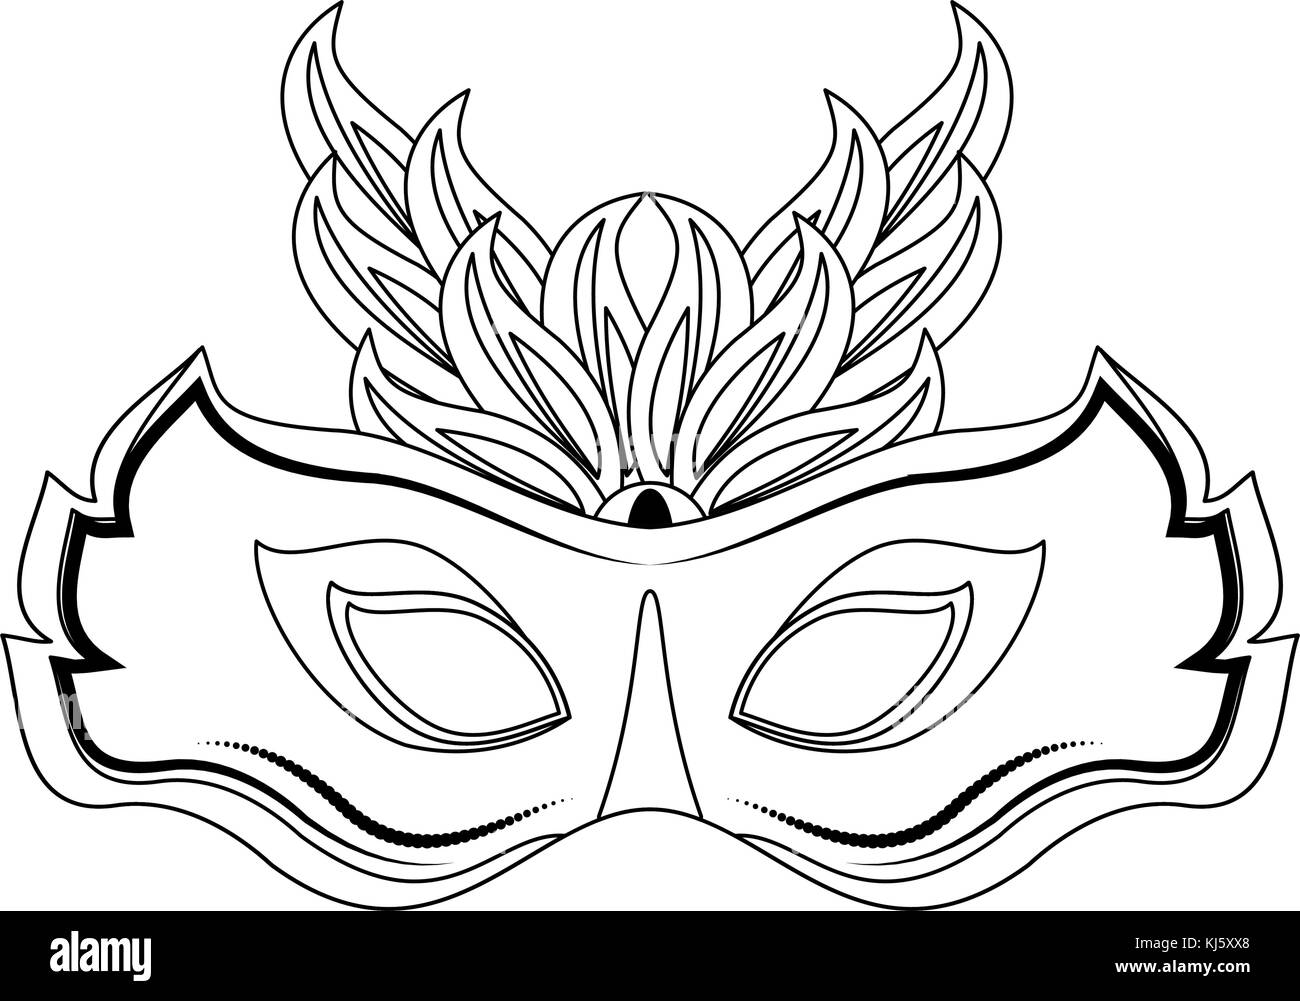 Colorful Festival Mask Feathers Vector Stock Photos  Colorful